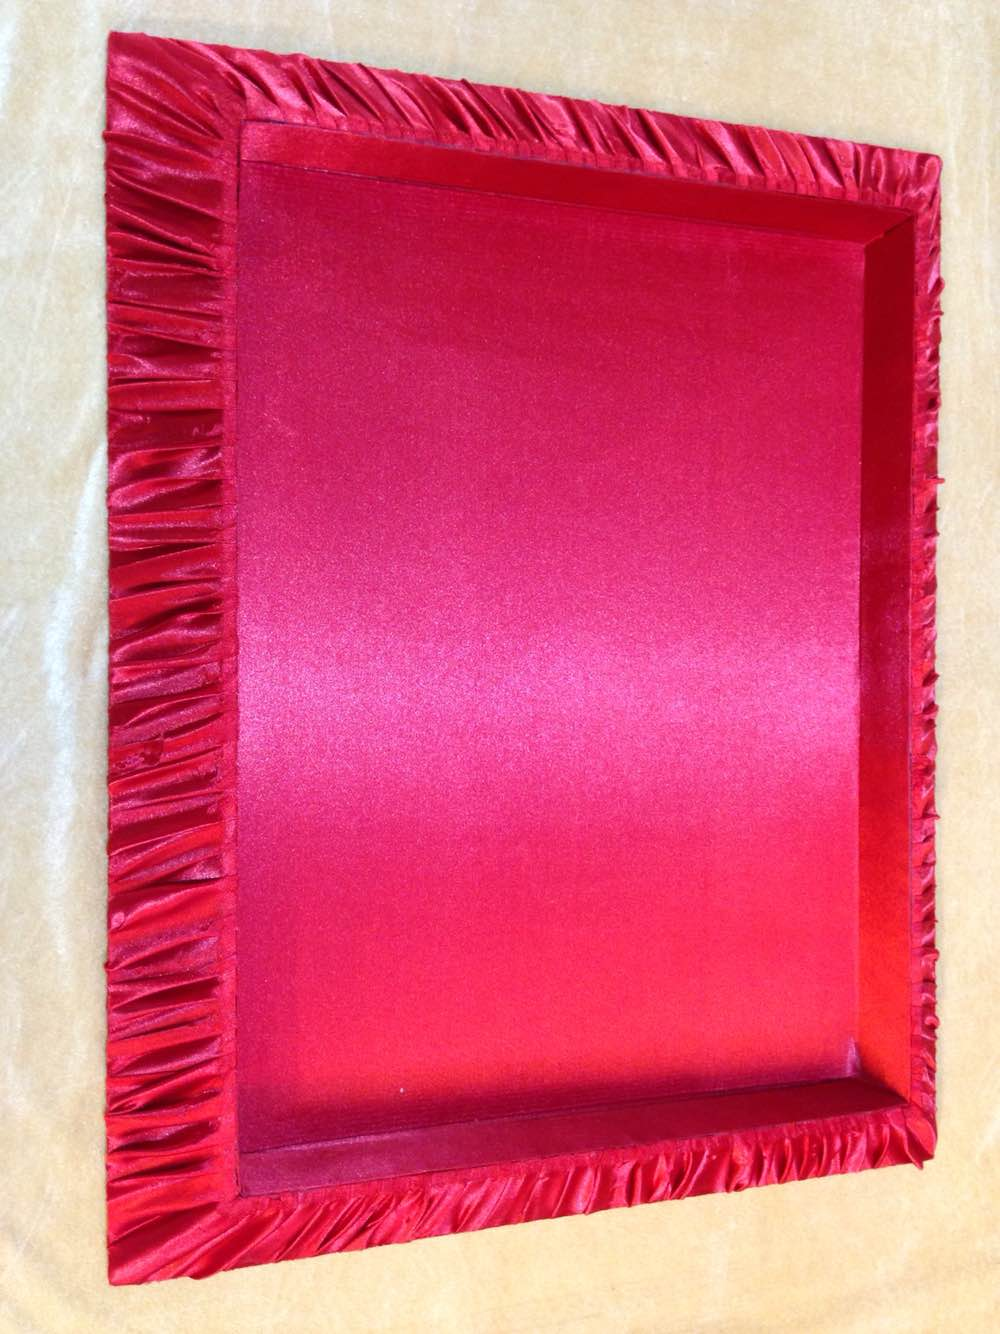 Bridal Saree Packing Tray   We are leading manufacturer, supplier and wholesaler of Bridal Saree Packing Tray